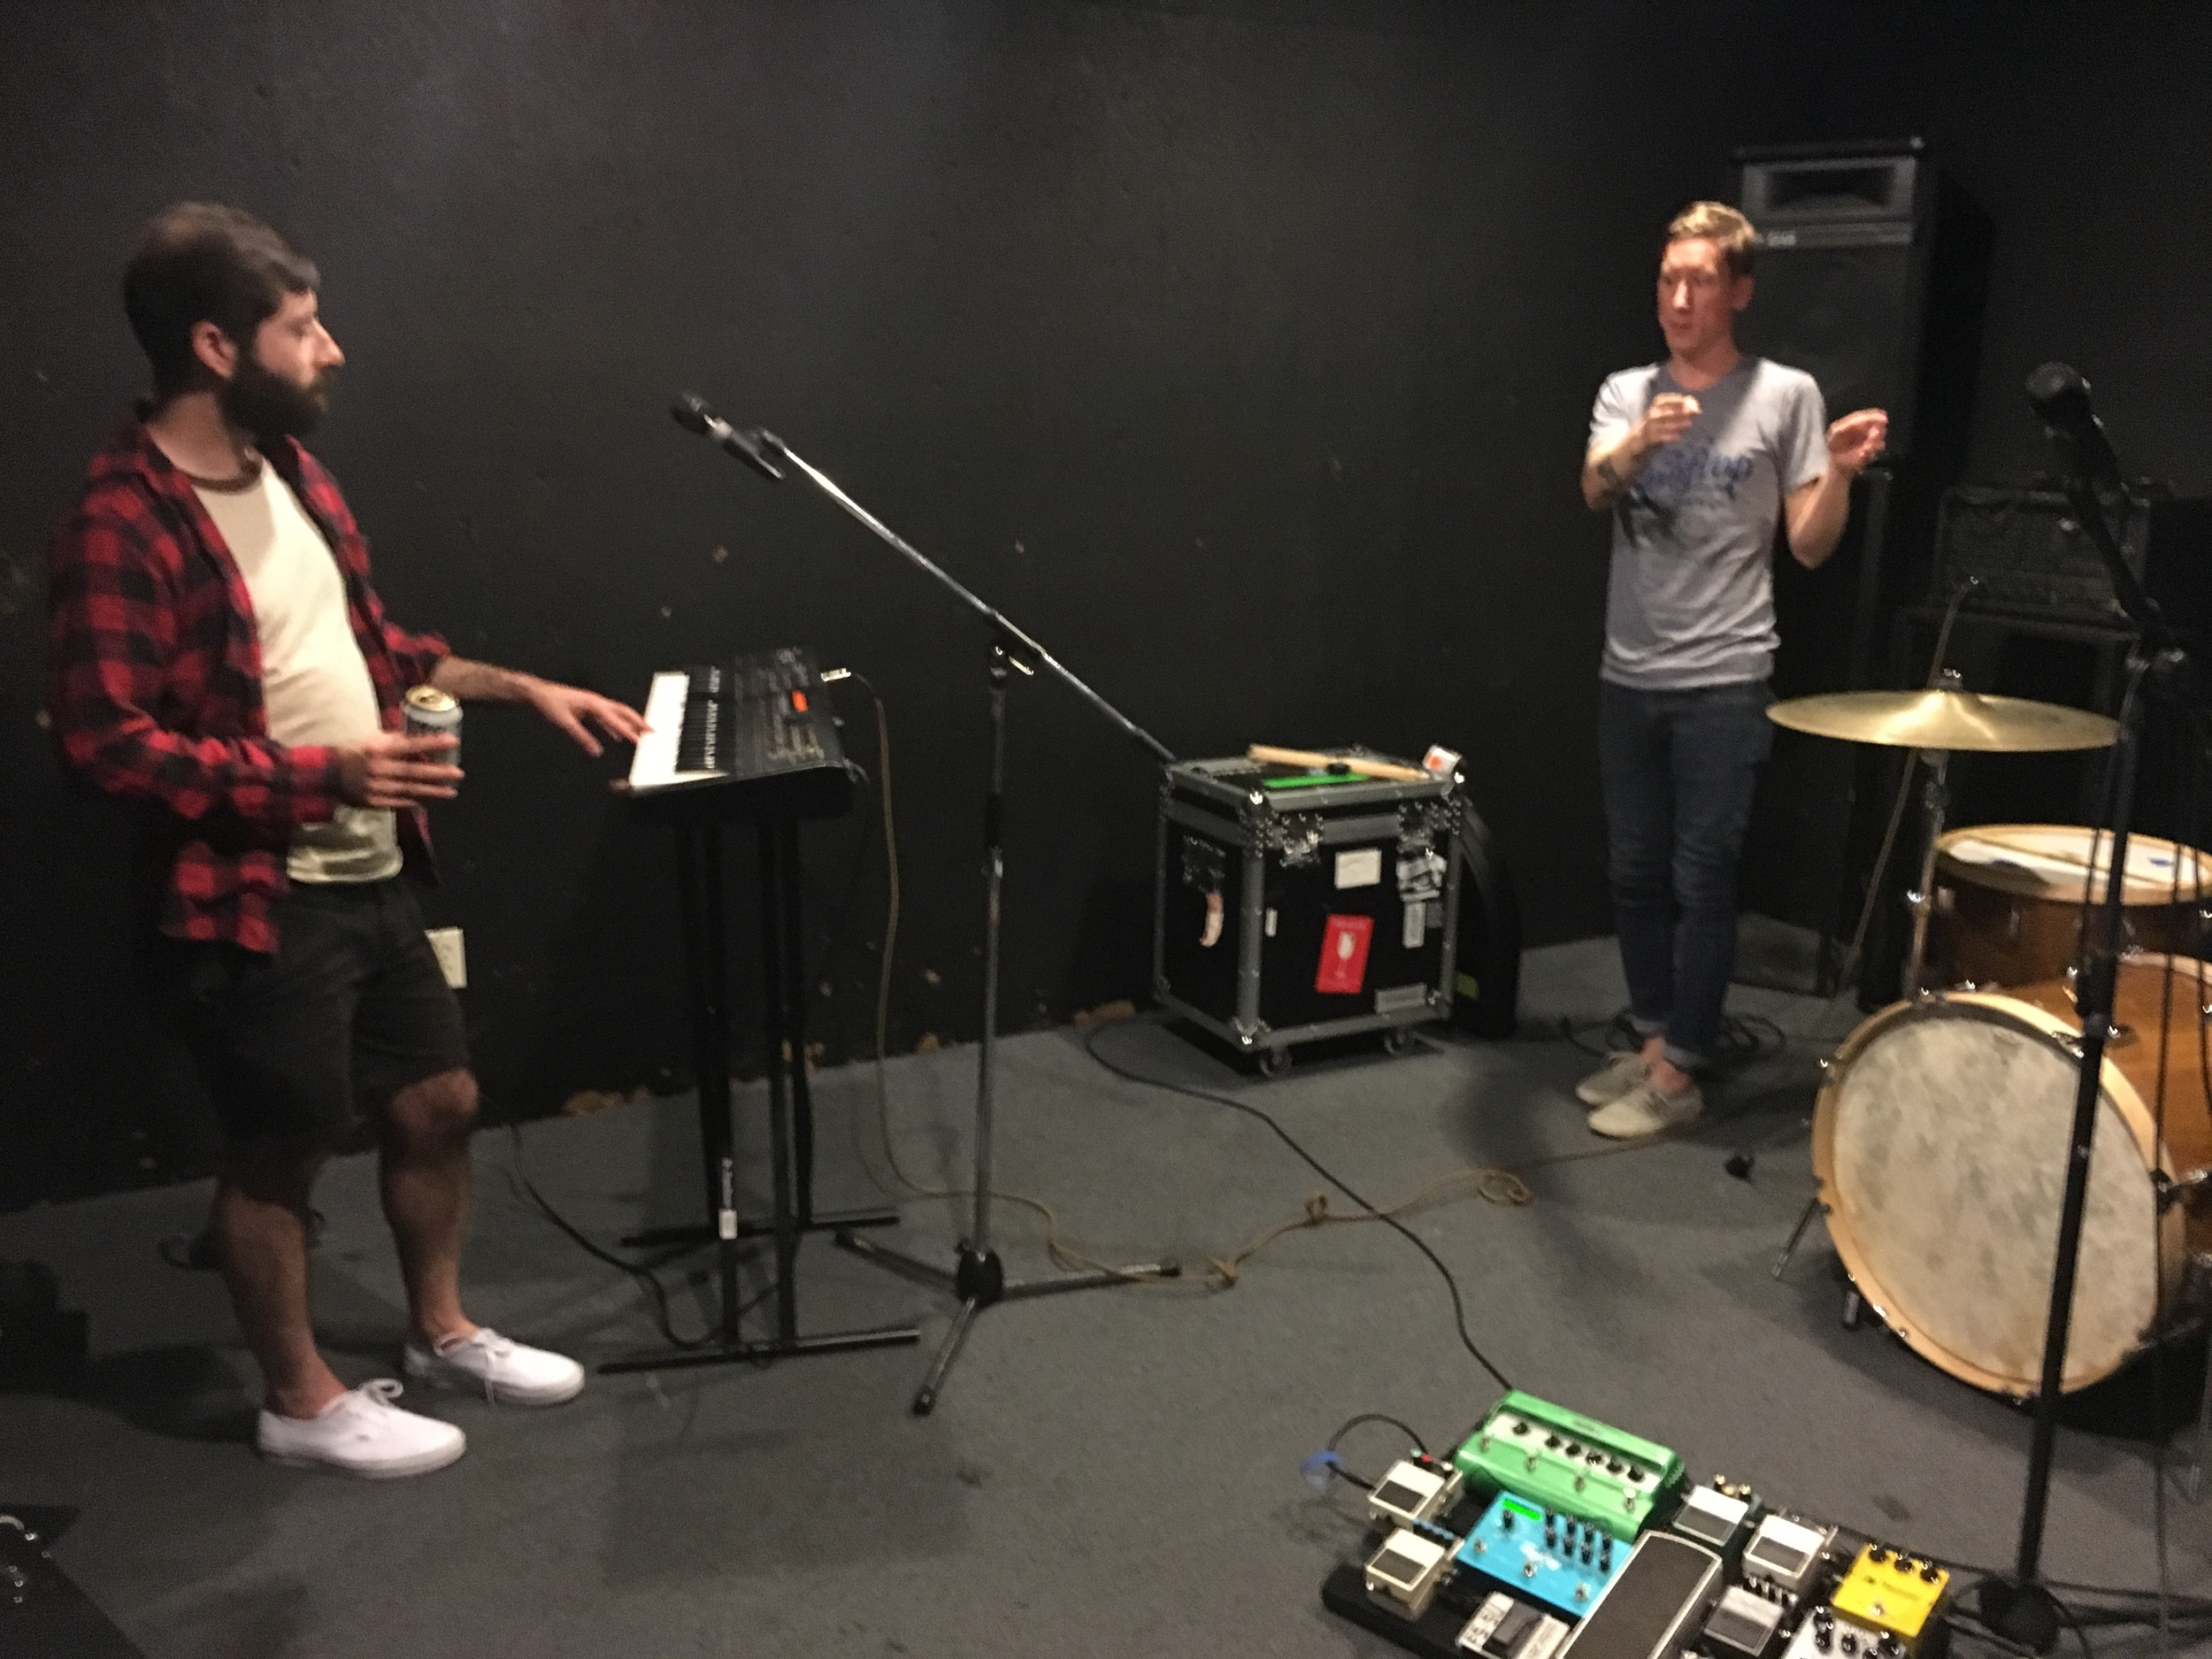 Jason and Daniel working out parts during pre-production